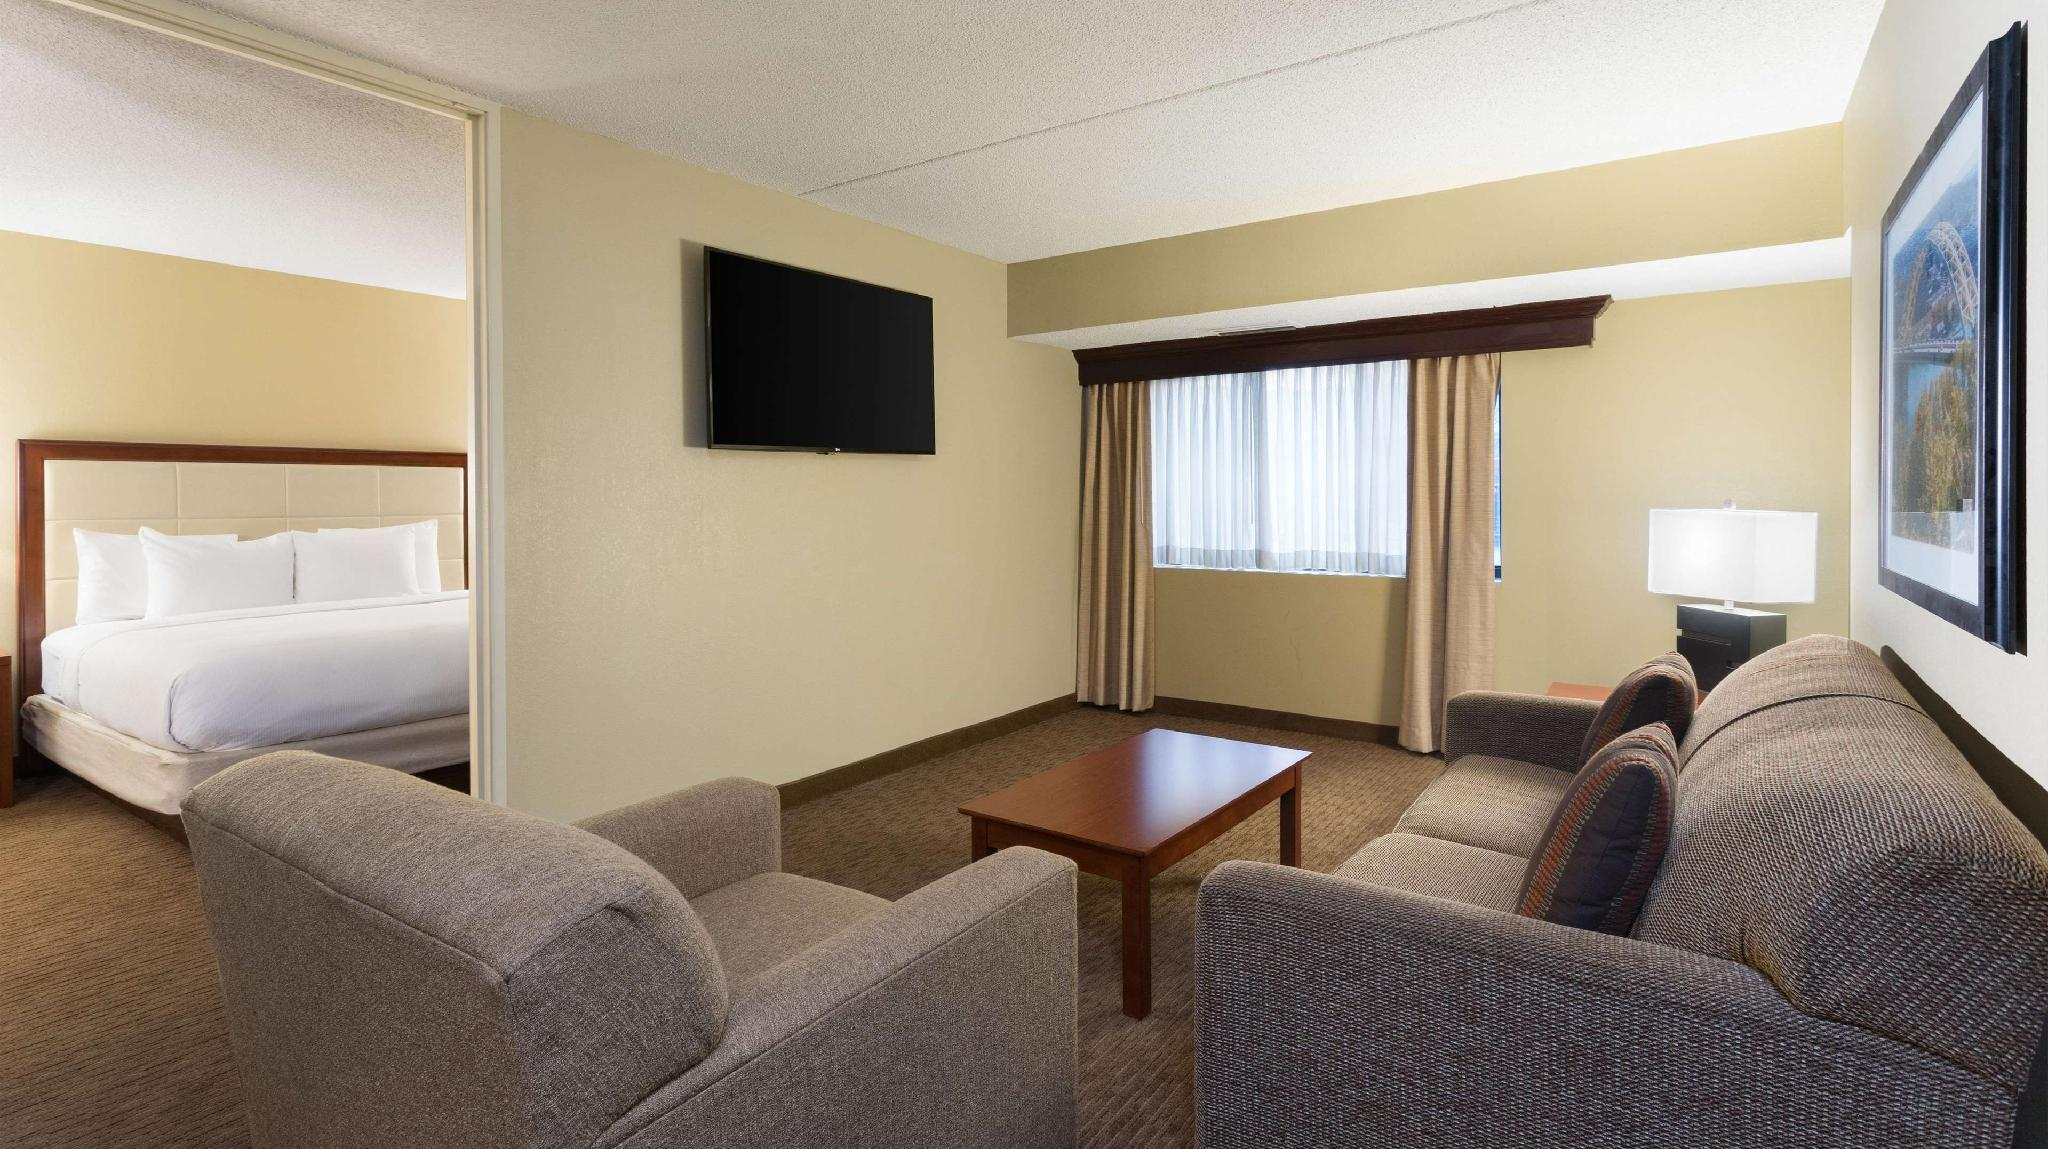 1 King Bed 3 Room Conference Suite With Sofabed